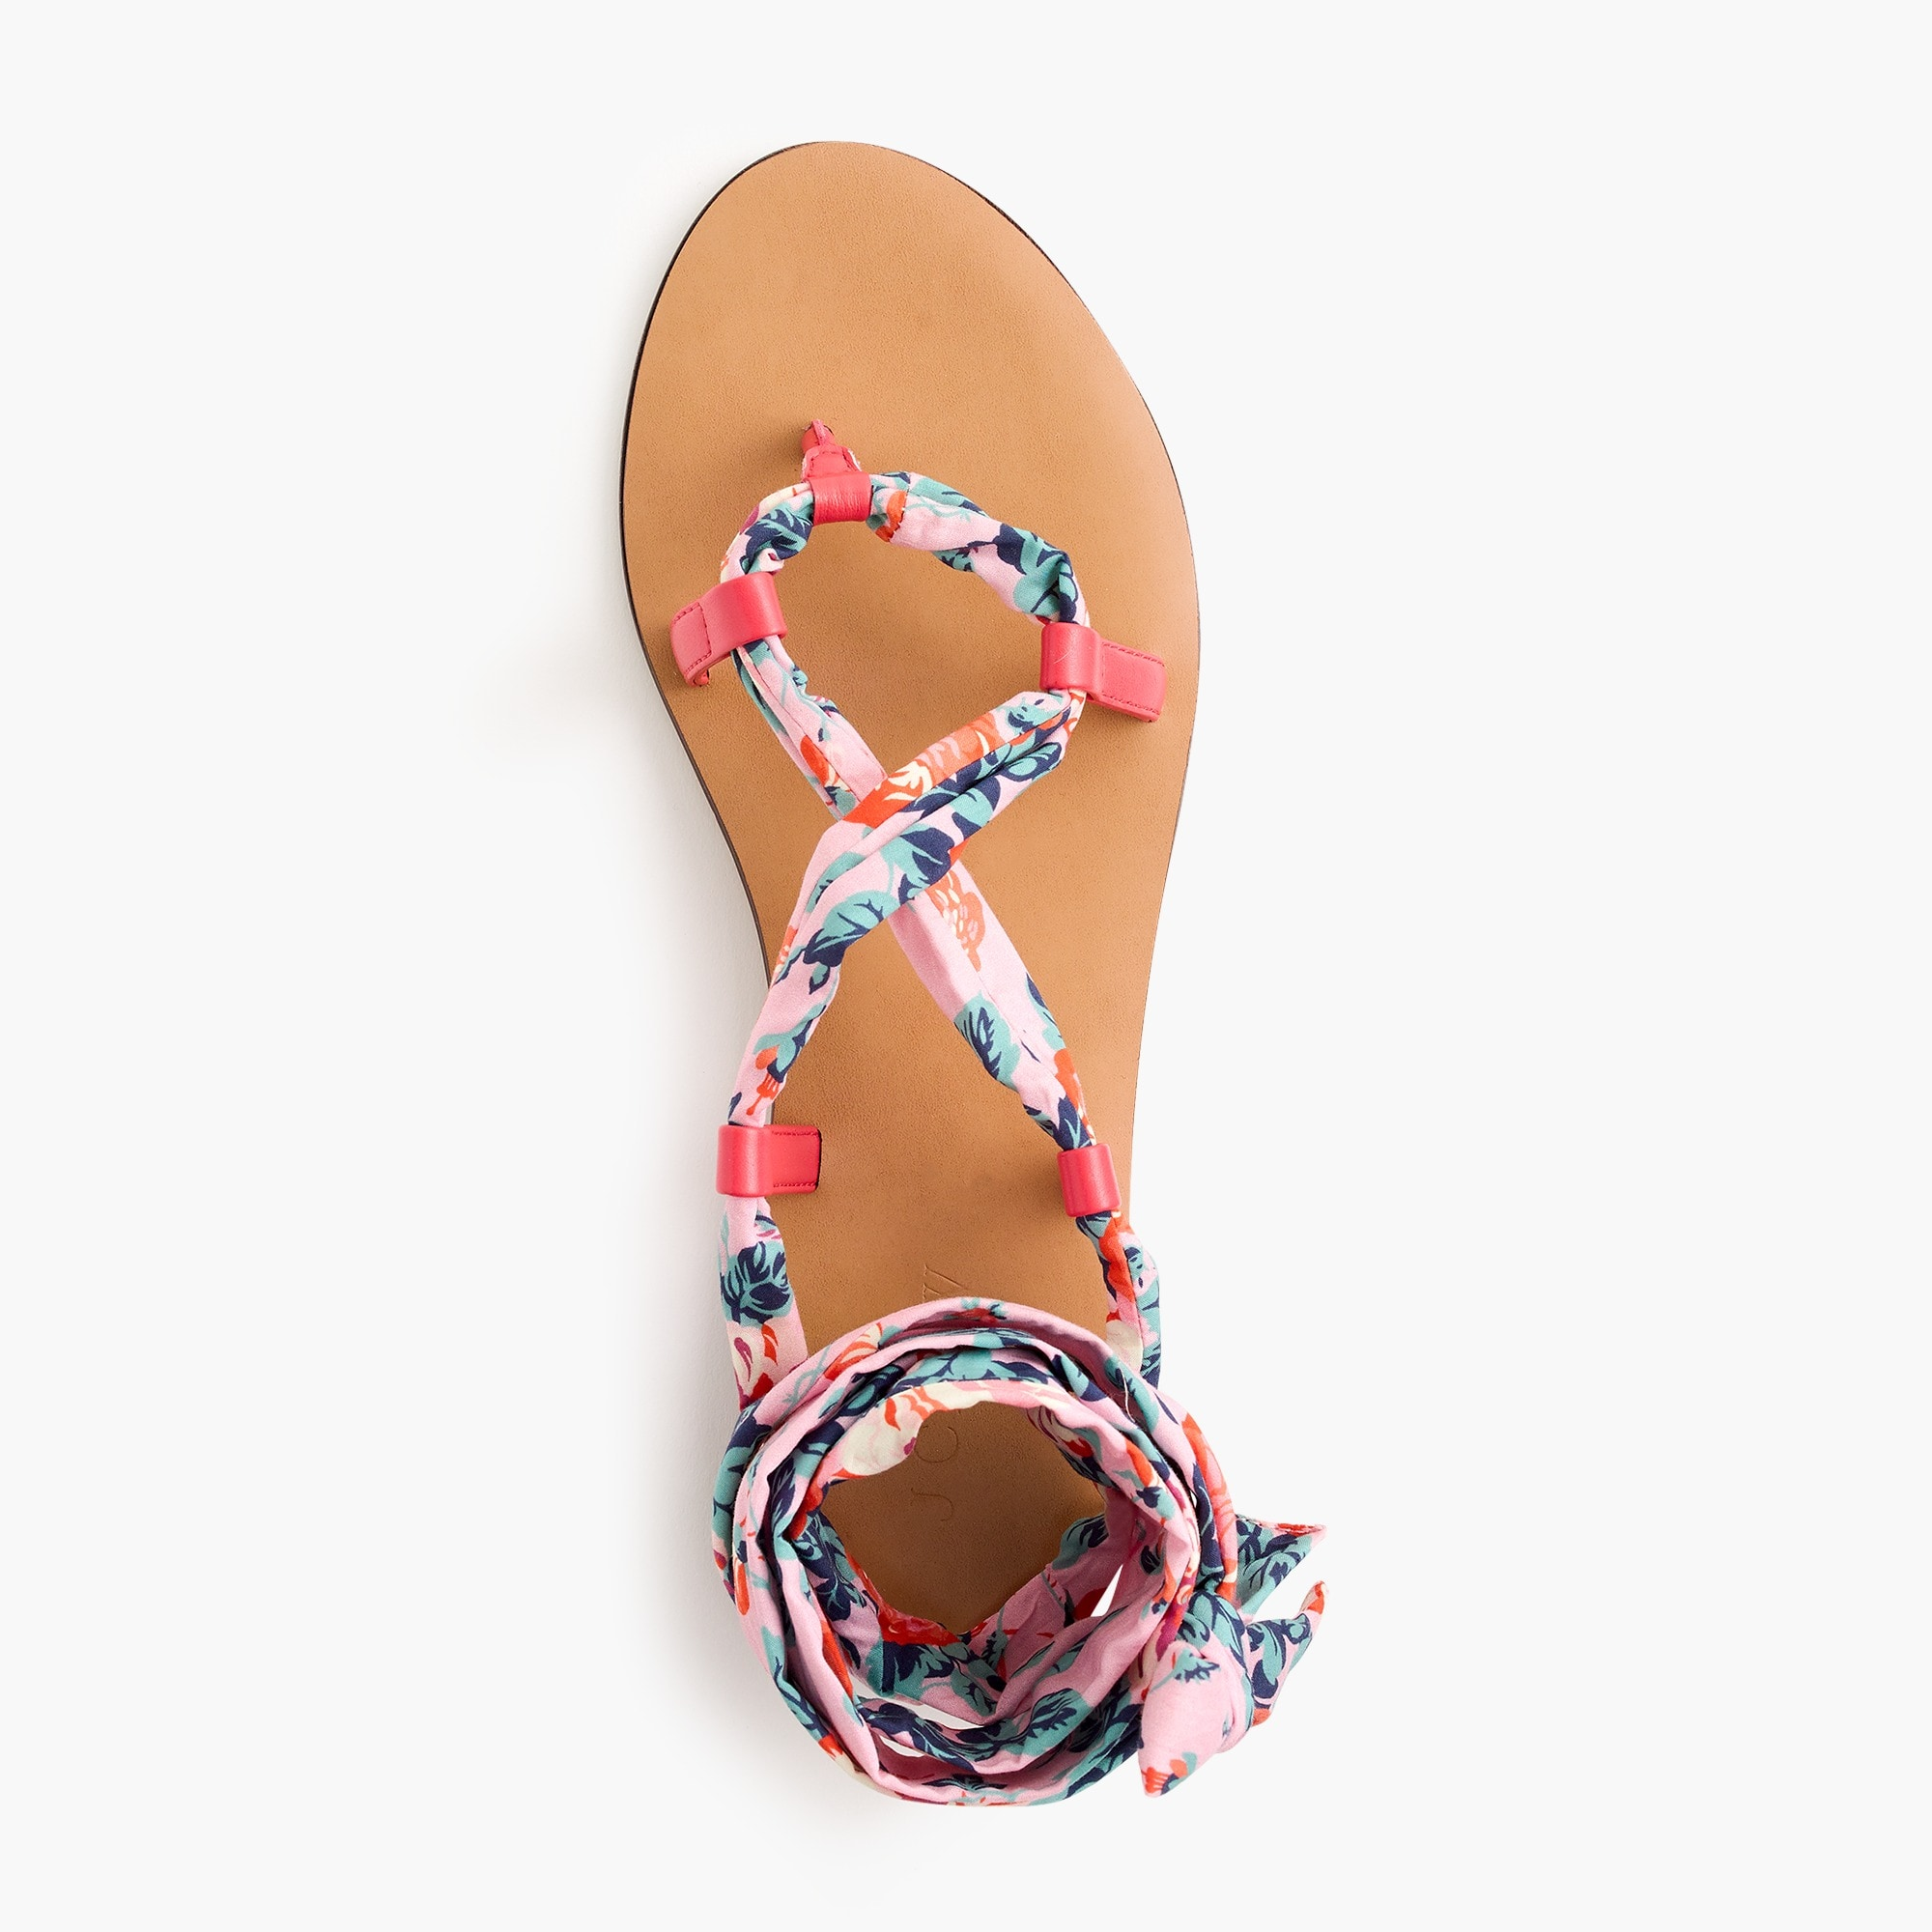 Image 1 for Wrap-around sandals in Liberty® floral